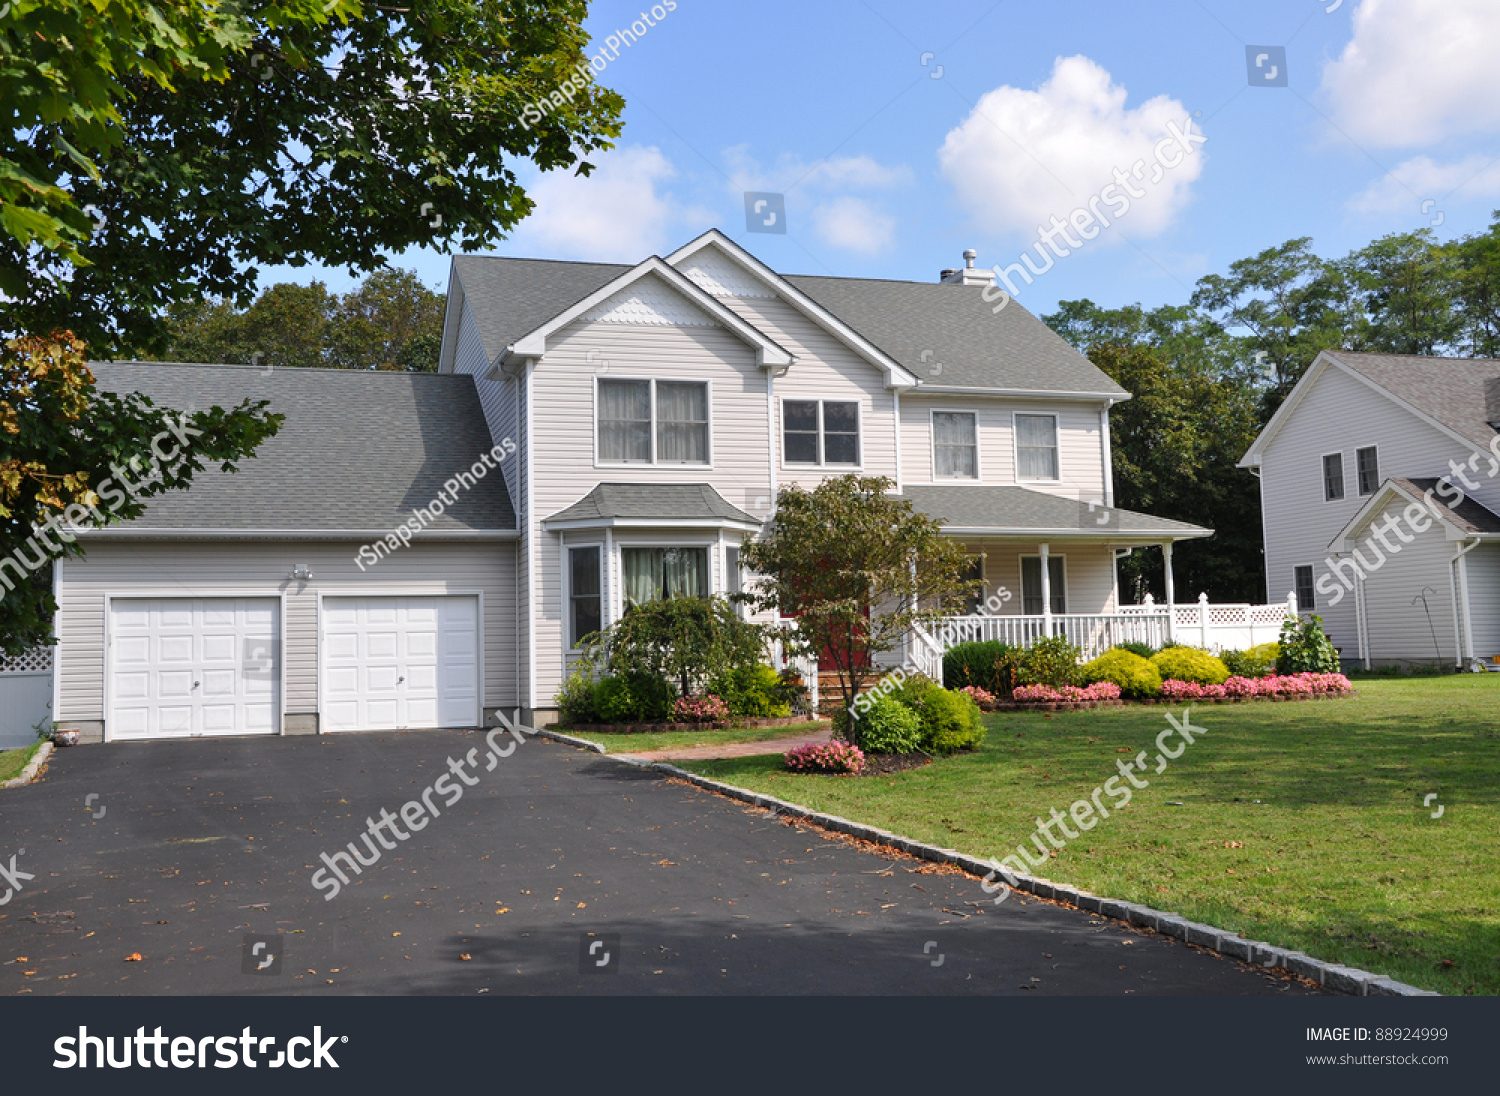 Suburban two car garage large siding home with double wide for How wide is a two car garage